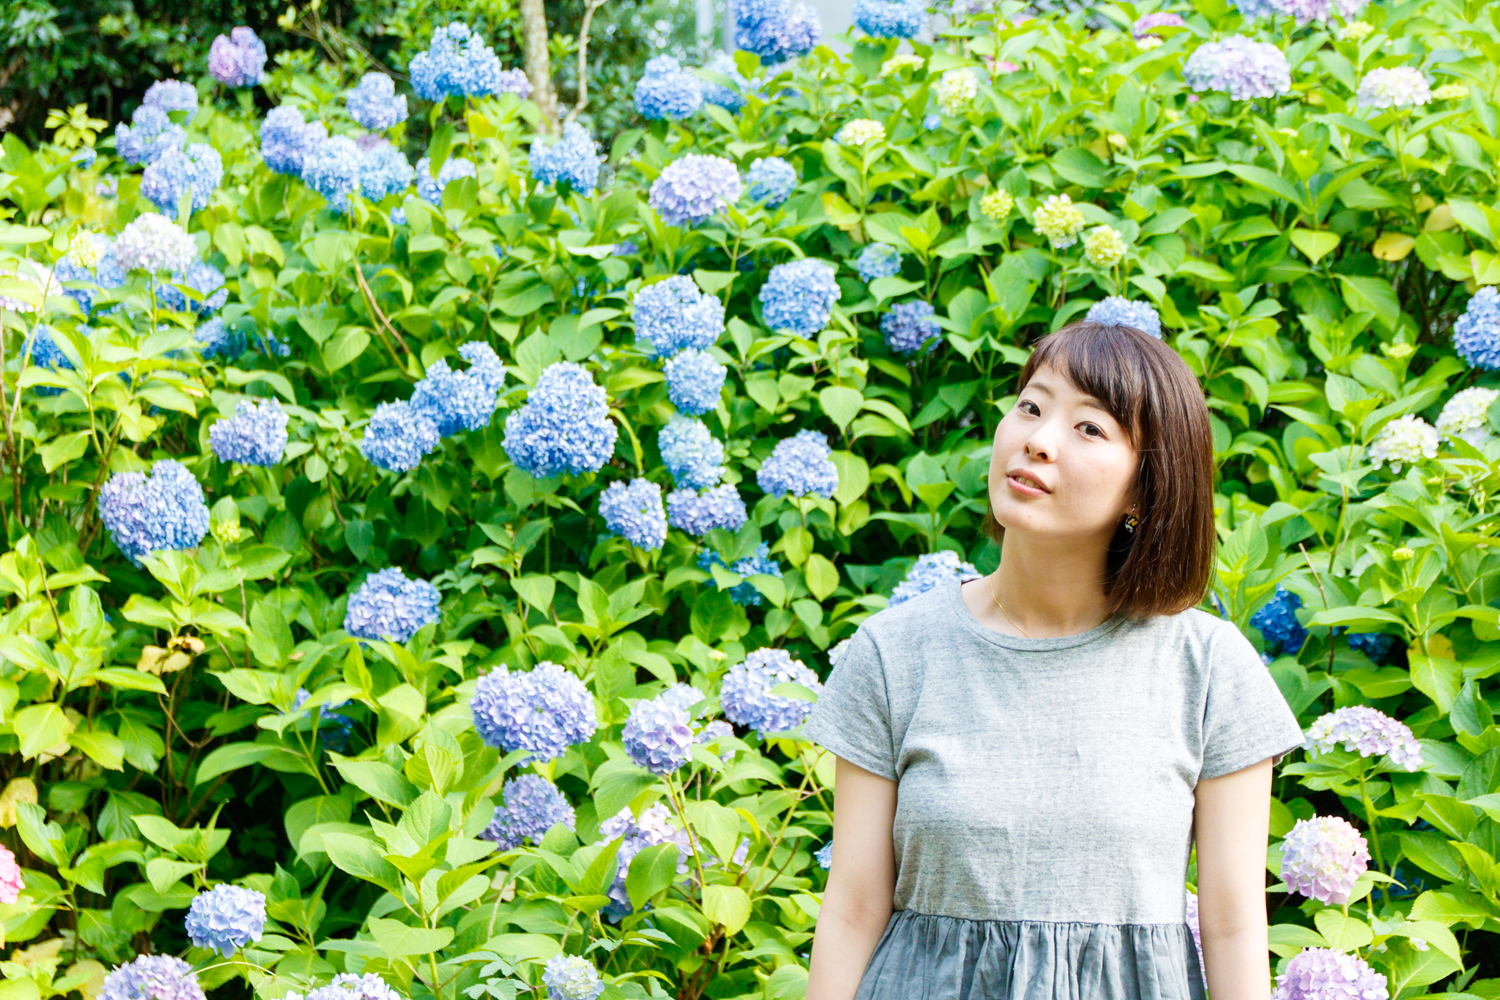 Photoshooting tour in Kyoto with Hydrensias!!